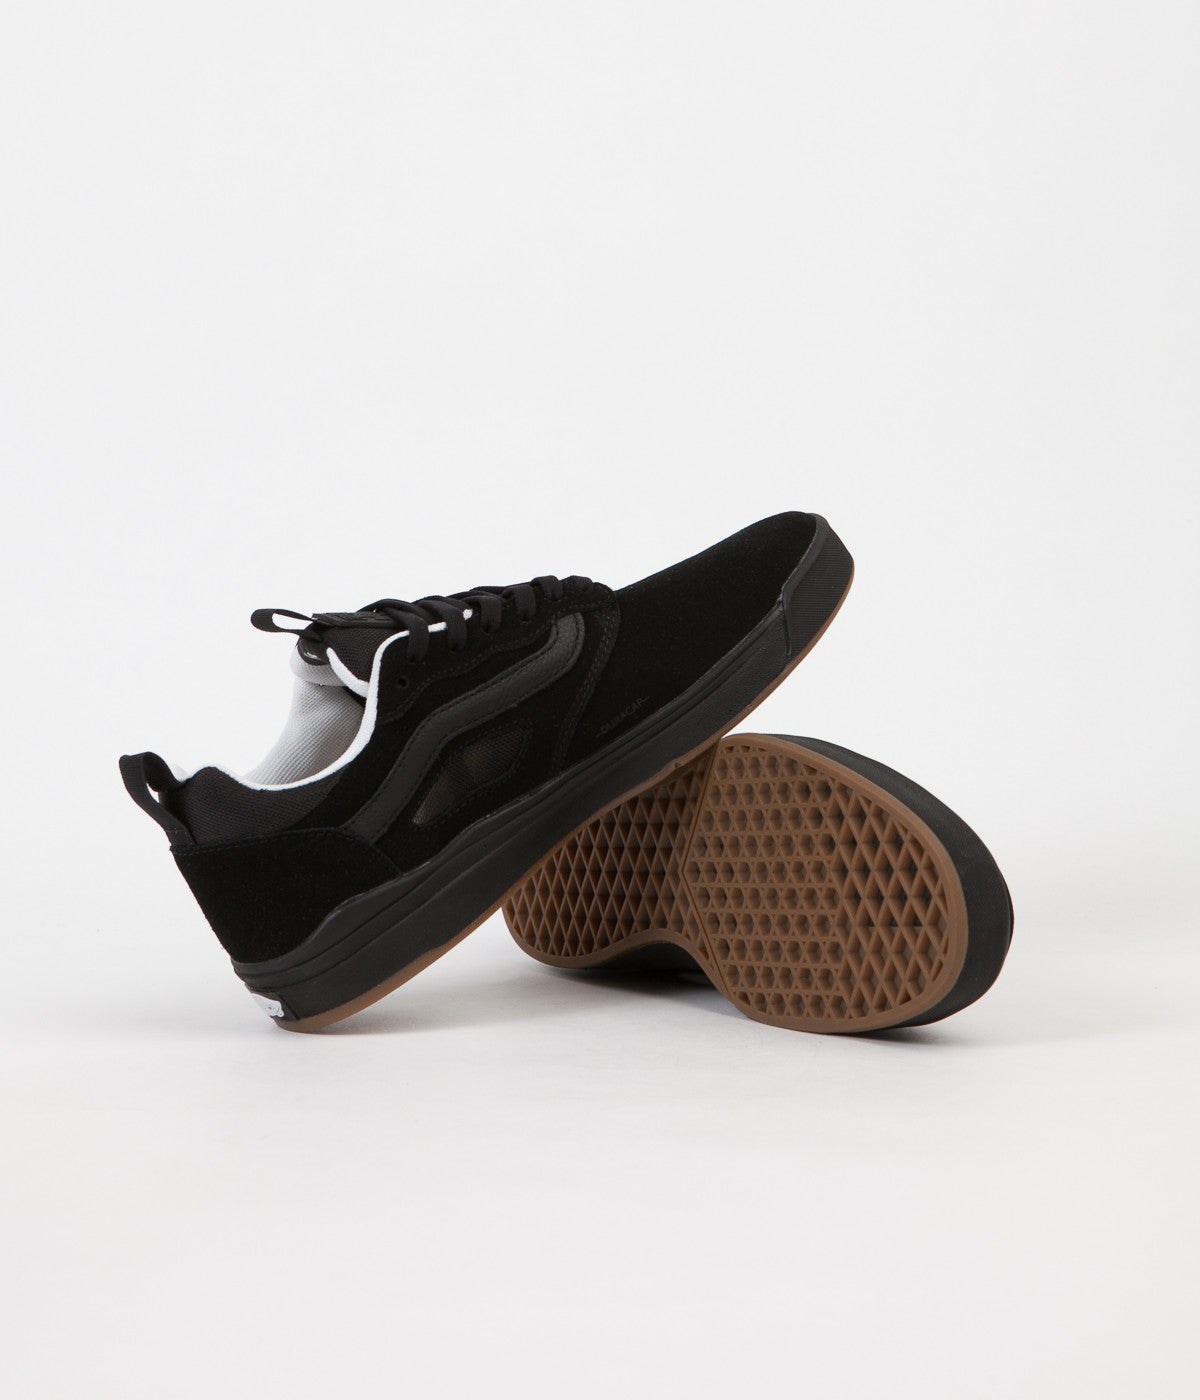 be5f46a867d5 ... Vans x Thrasher UltraRange Pro Shoes - Black   Gum ...